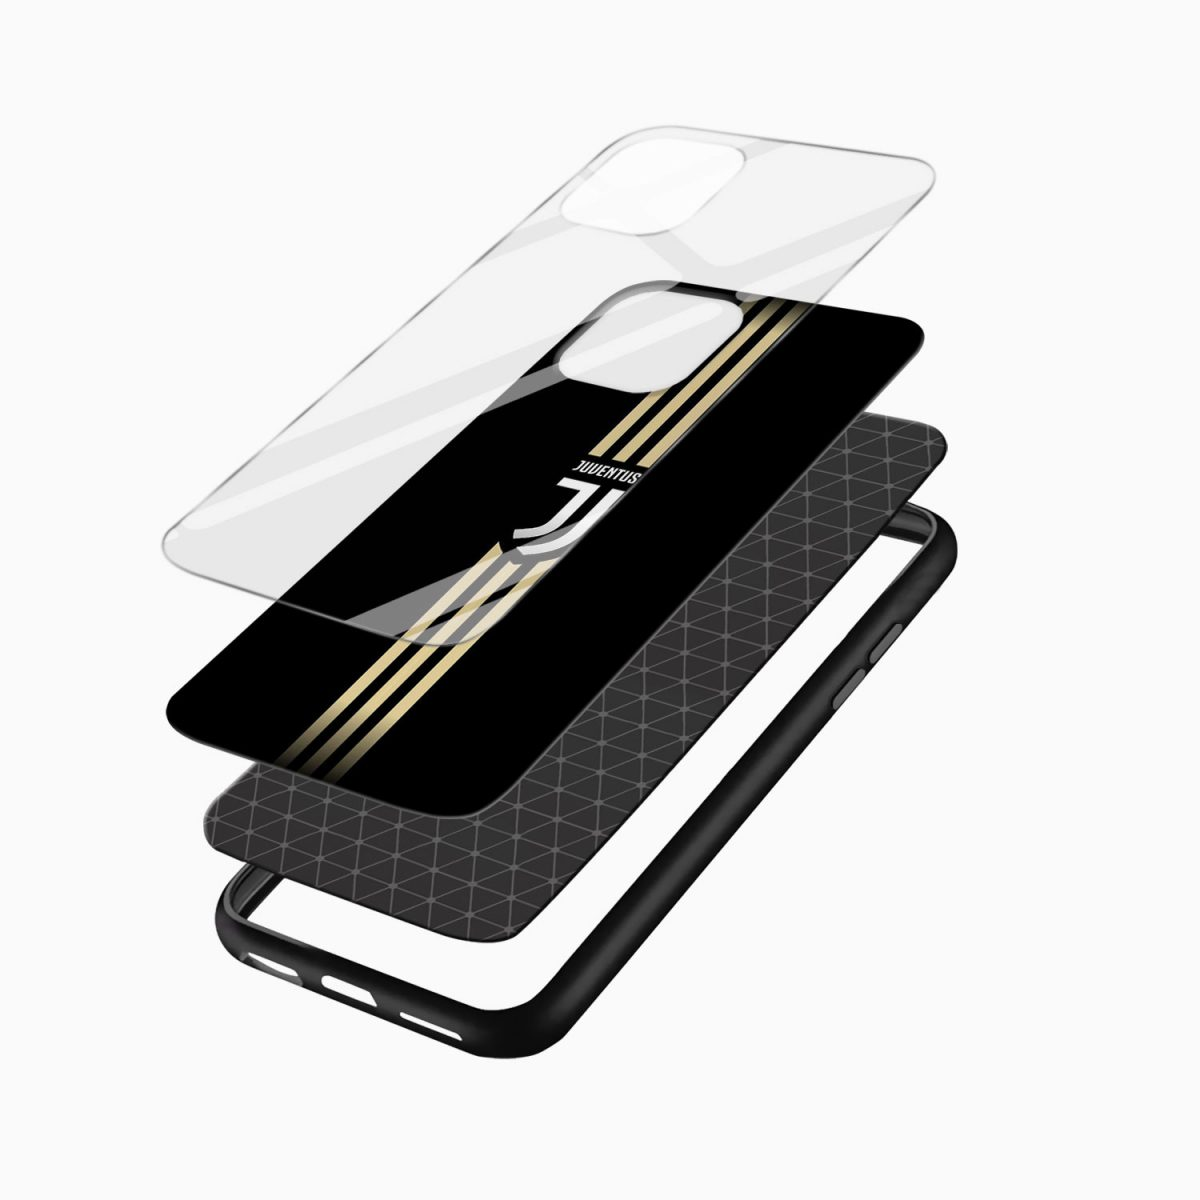 juventus iphone mobile cover layers view